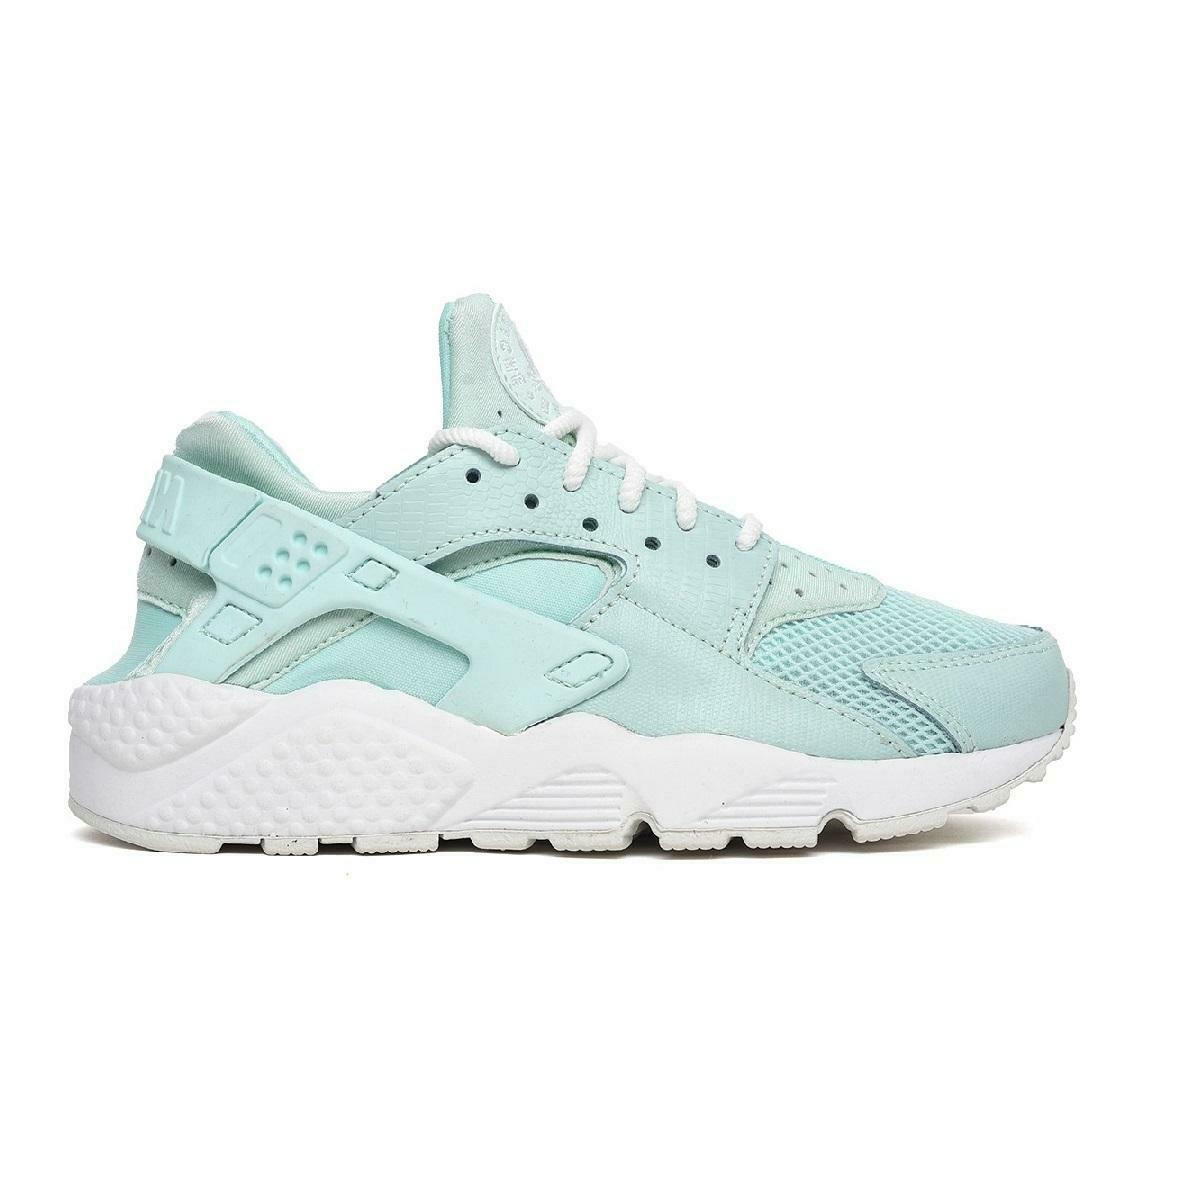 Womens NIKE AIR HUARACHE RUN SE Igloo Trainers 859429 300